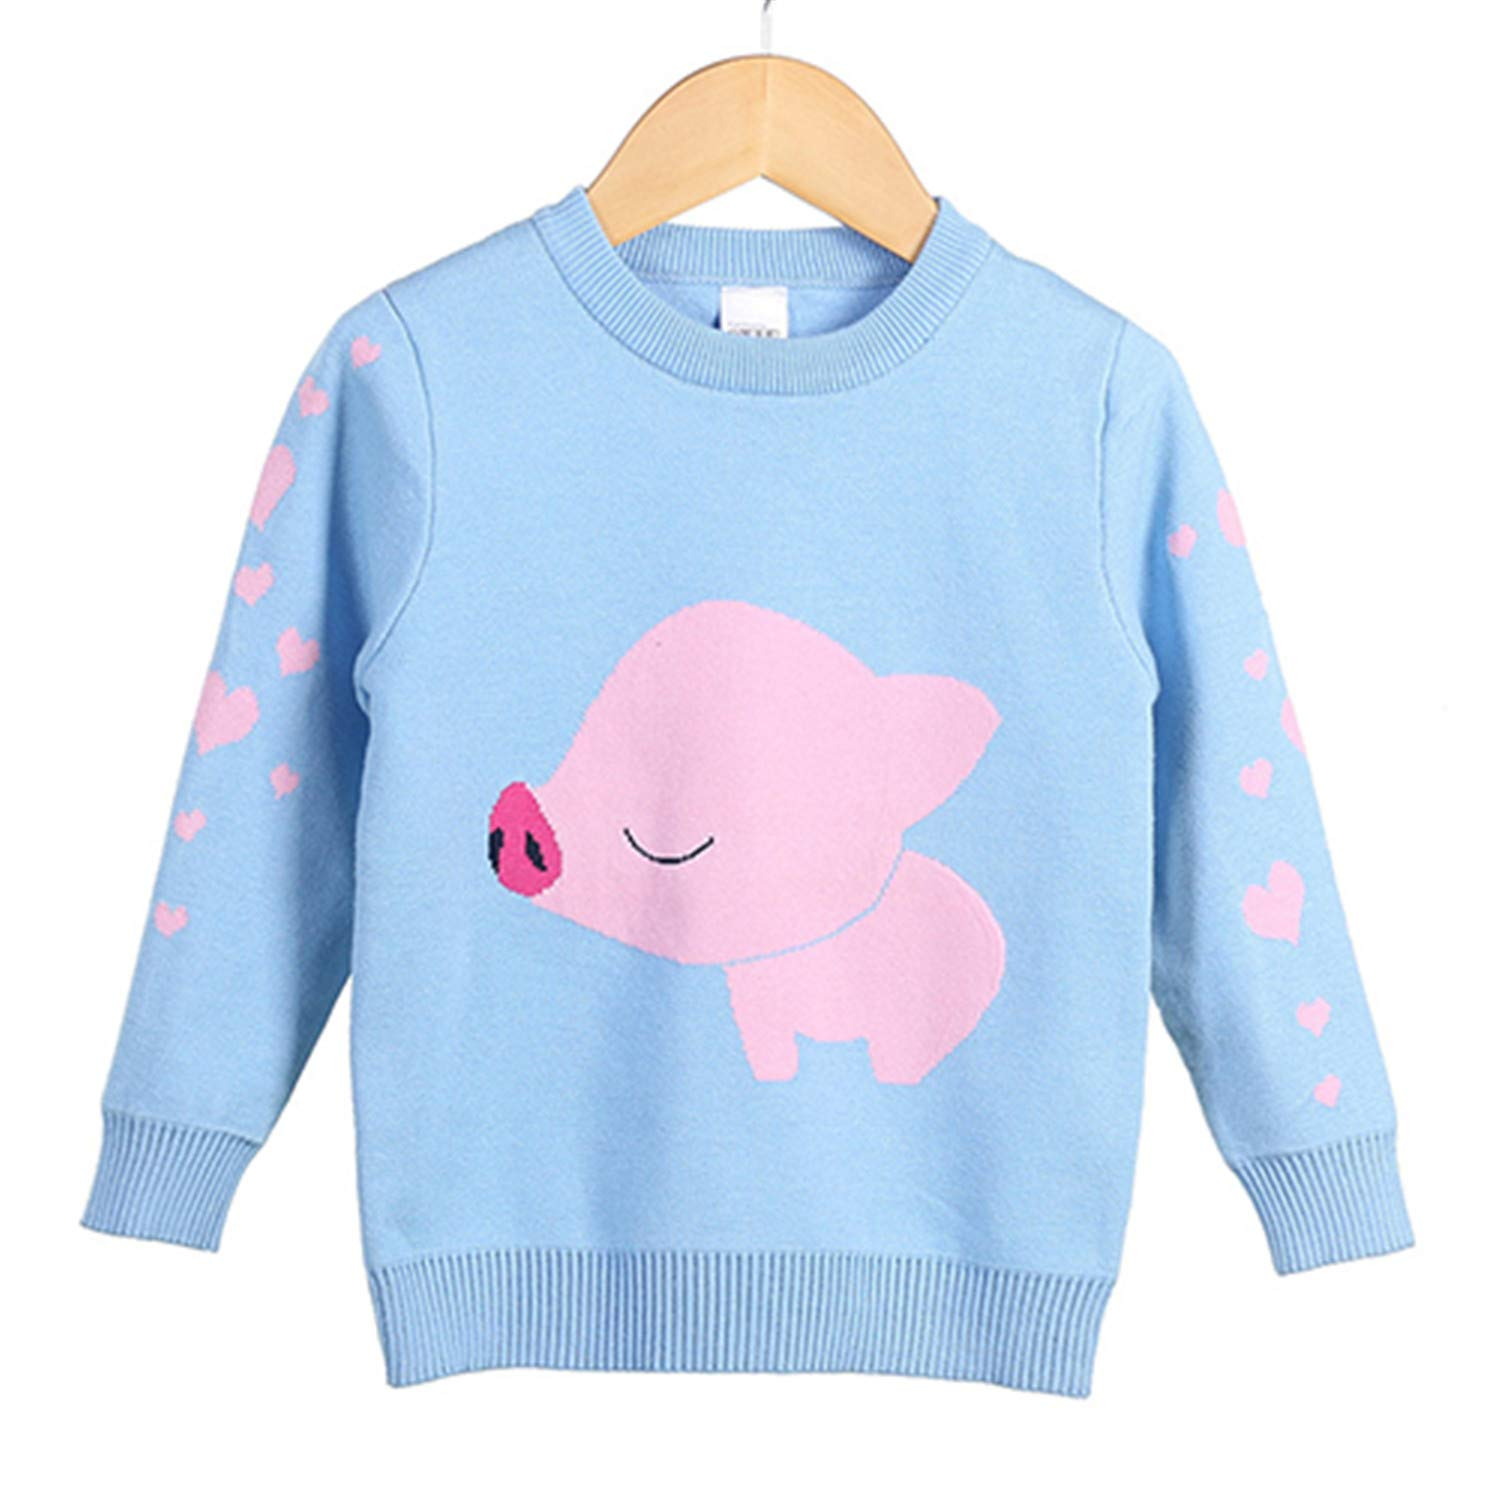 Gail Jonson 12 Style Kids Cartoon Sweaters Autumn Girls Boys Casual Thick Woolen Warm Clothes for 3-10 Years 15 6